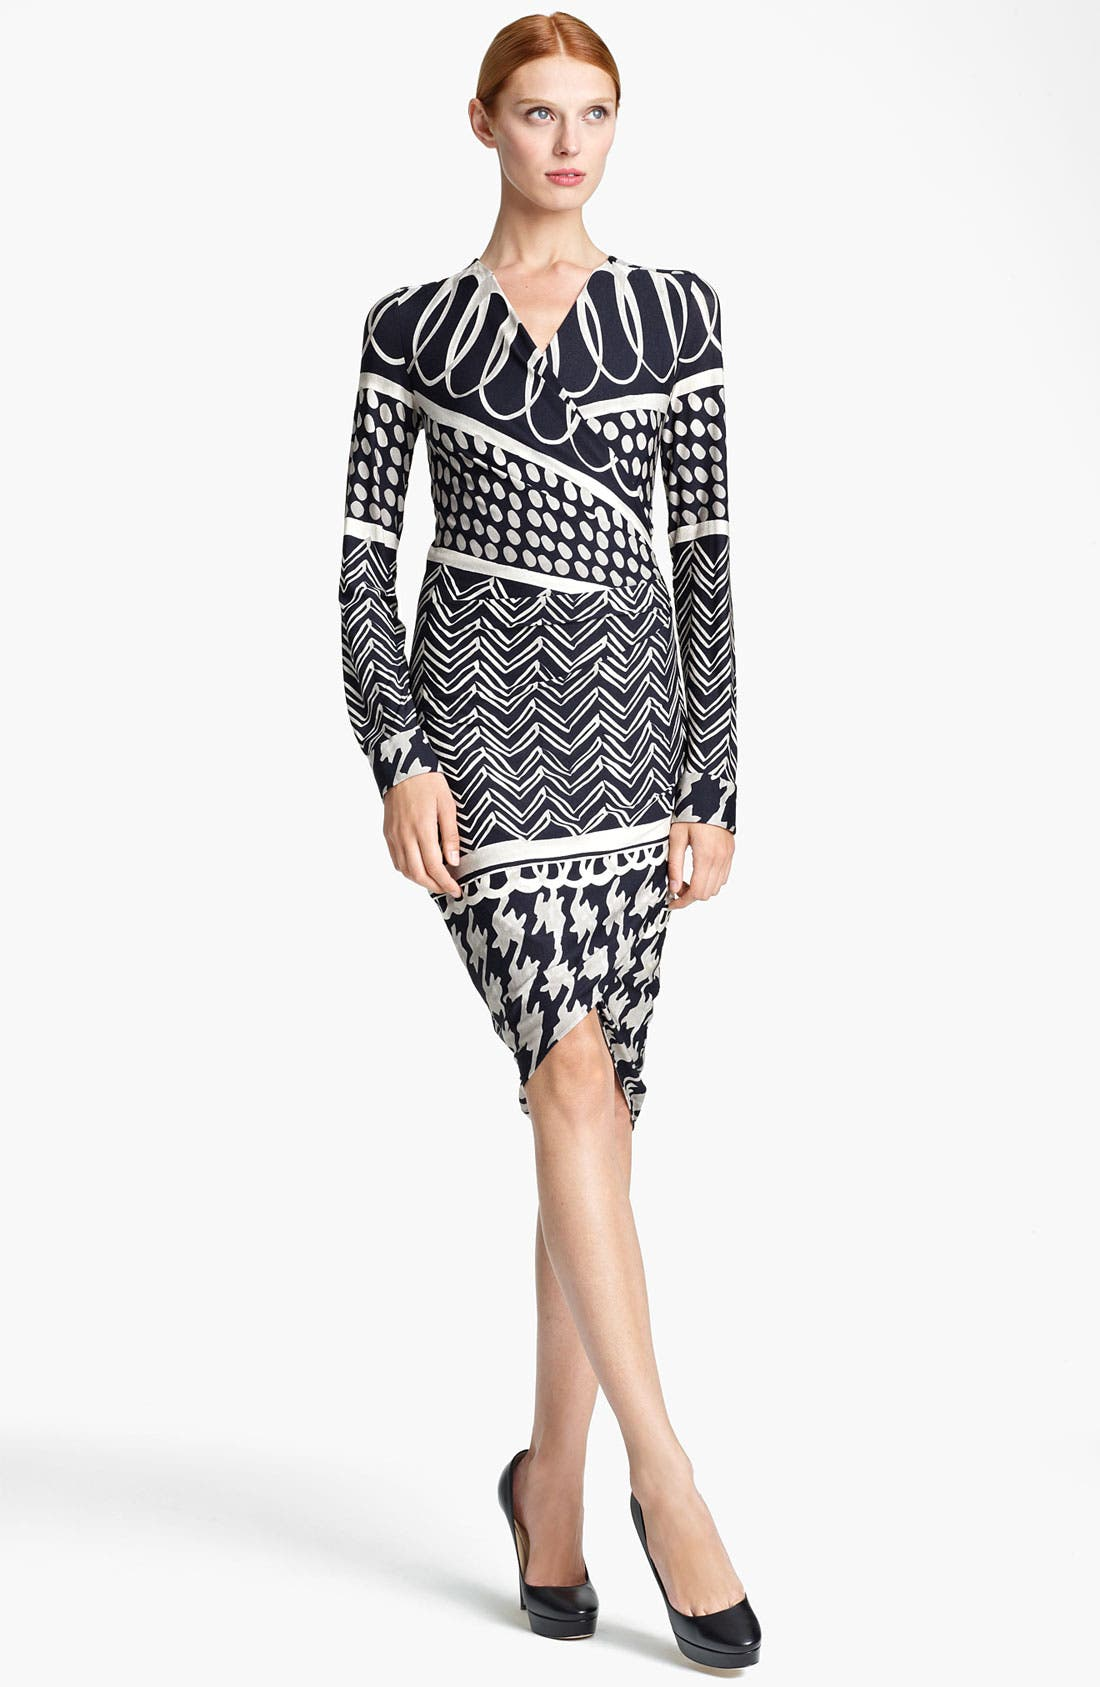 Main Image - Max Mara 'Eneide' Print Jersey Dress